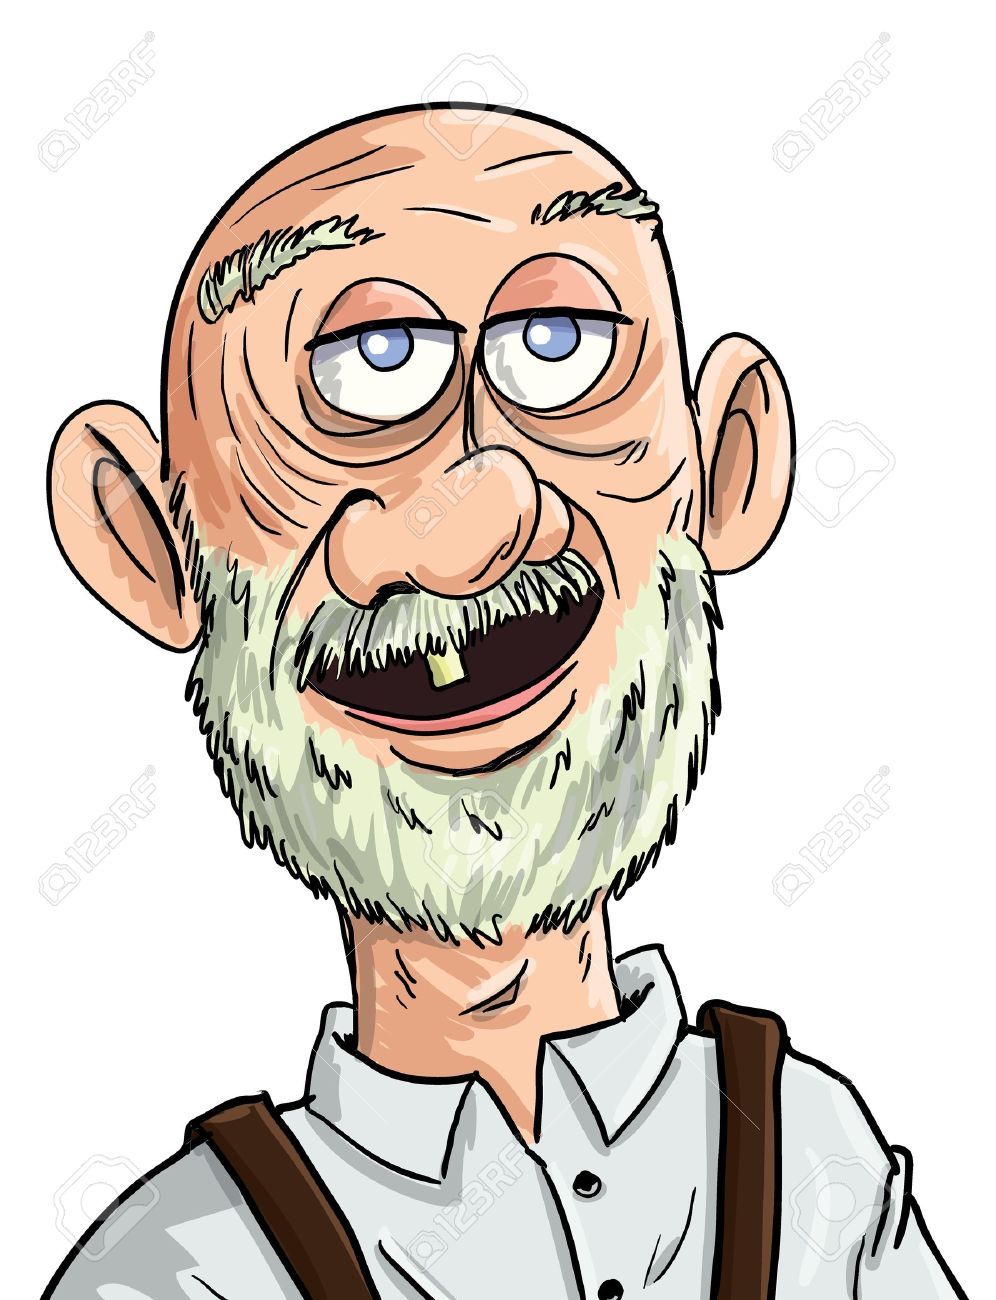 Cartoon Old Man With One Tooth. Isolated Royalty Free Cliparts, Vectors,  And Stock Illustration. Image 14227552.